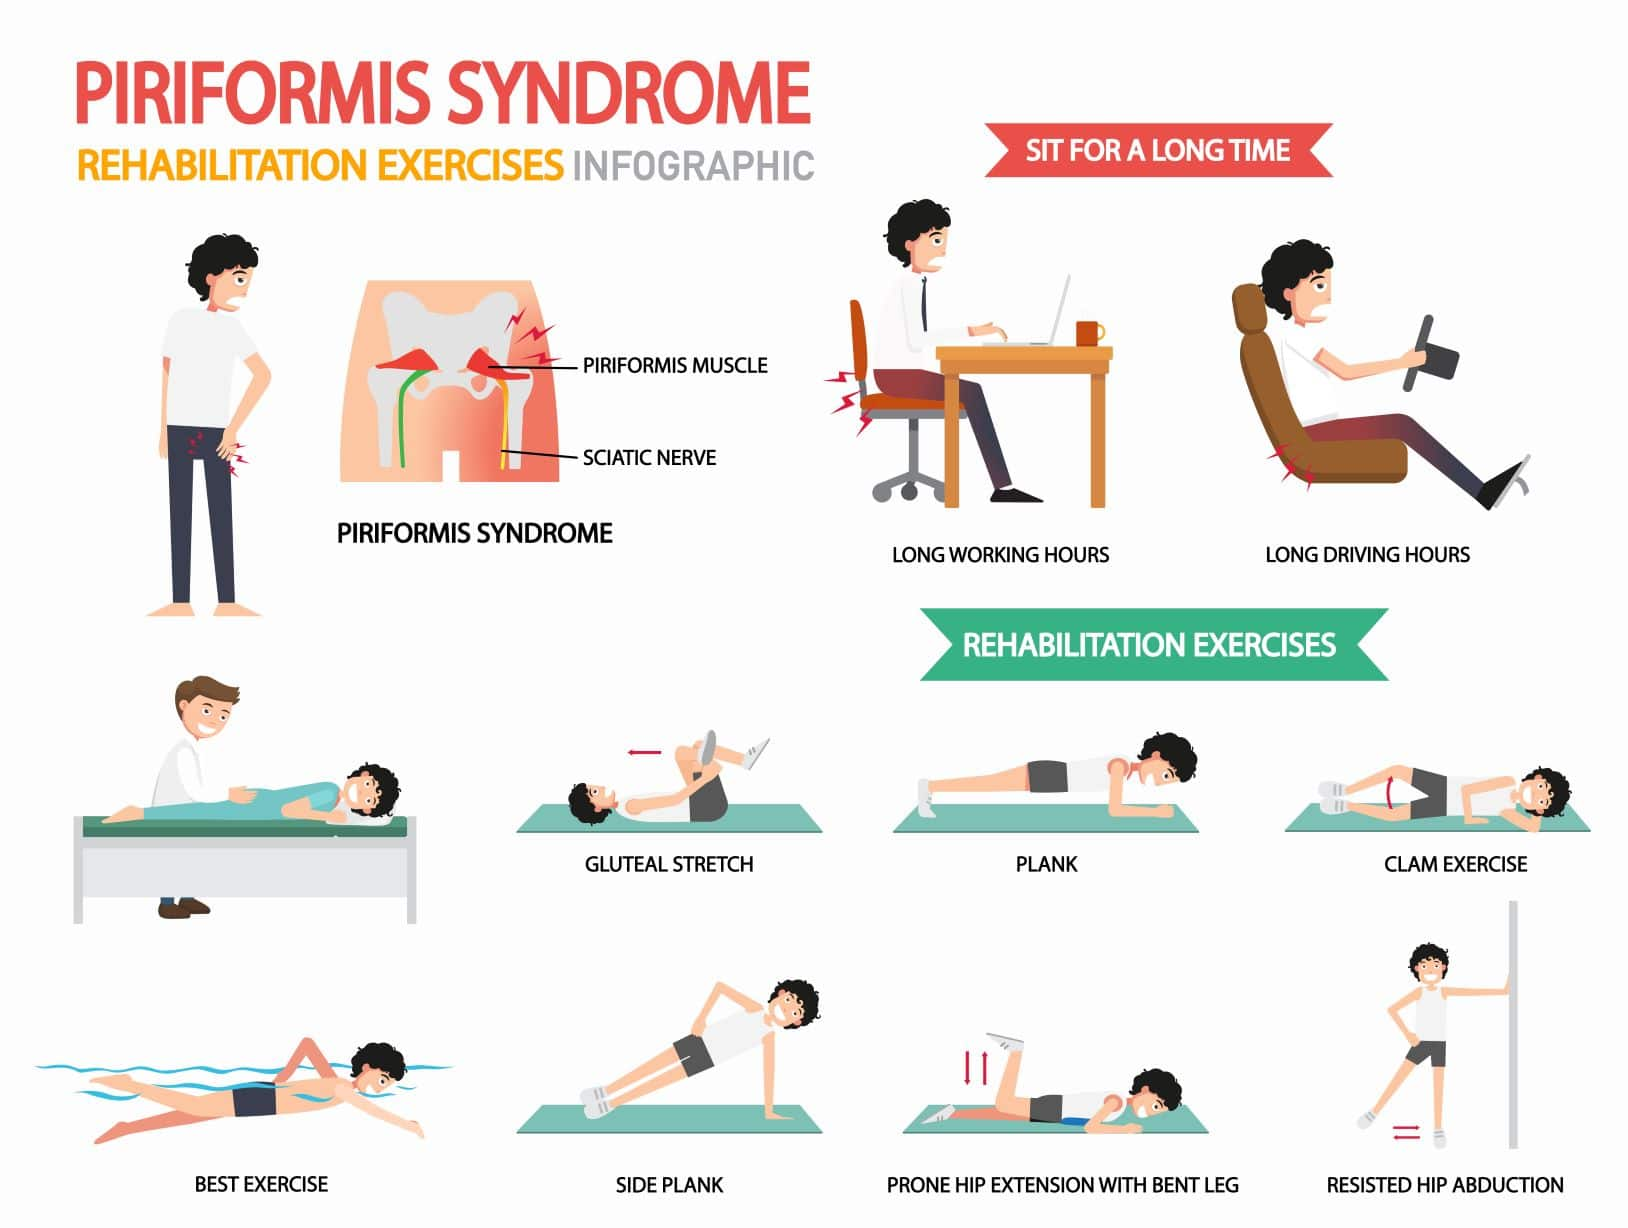 Information about Piriformis Syndrome